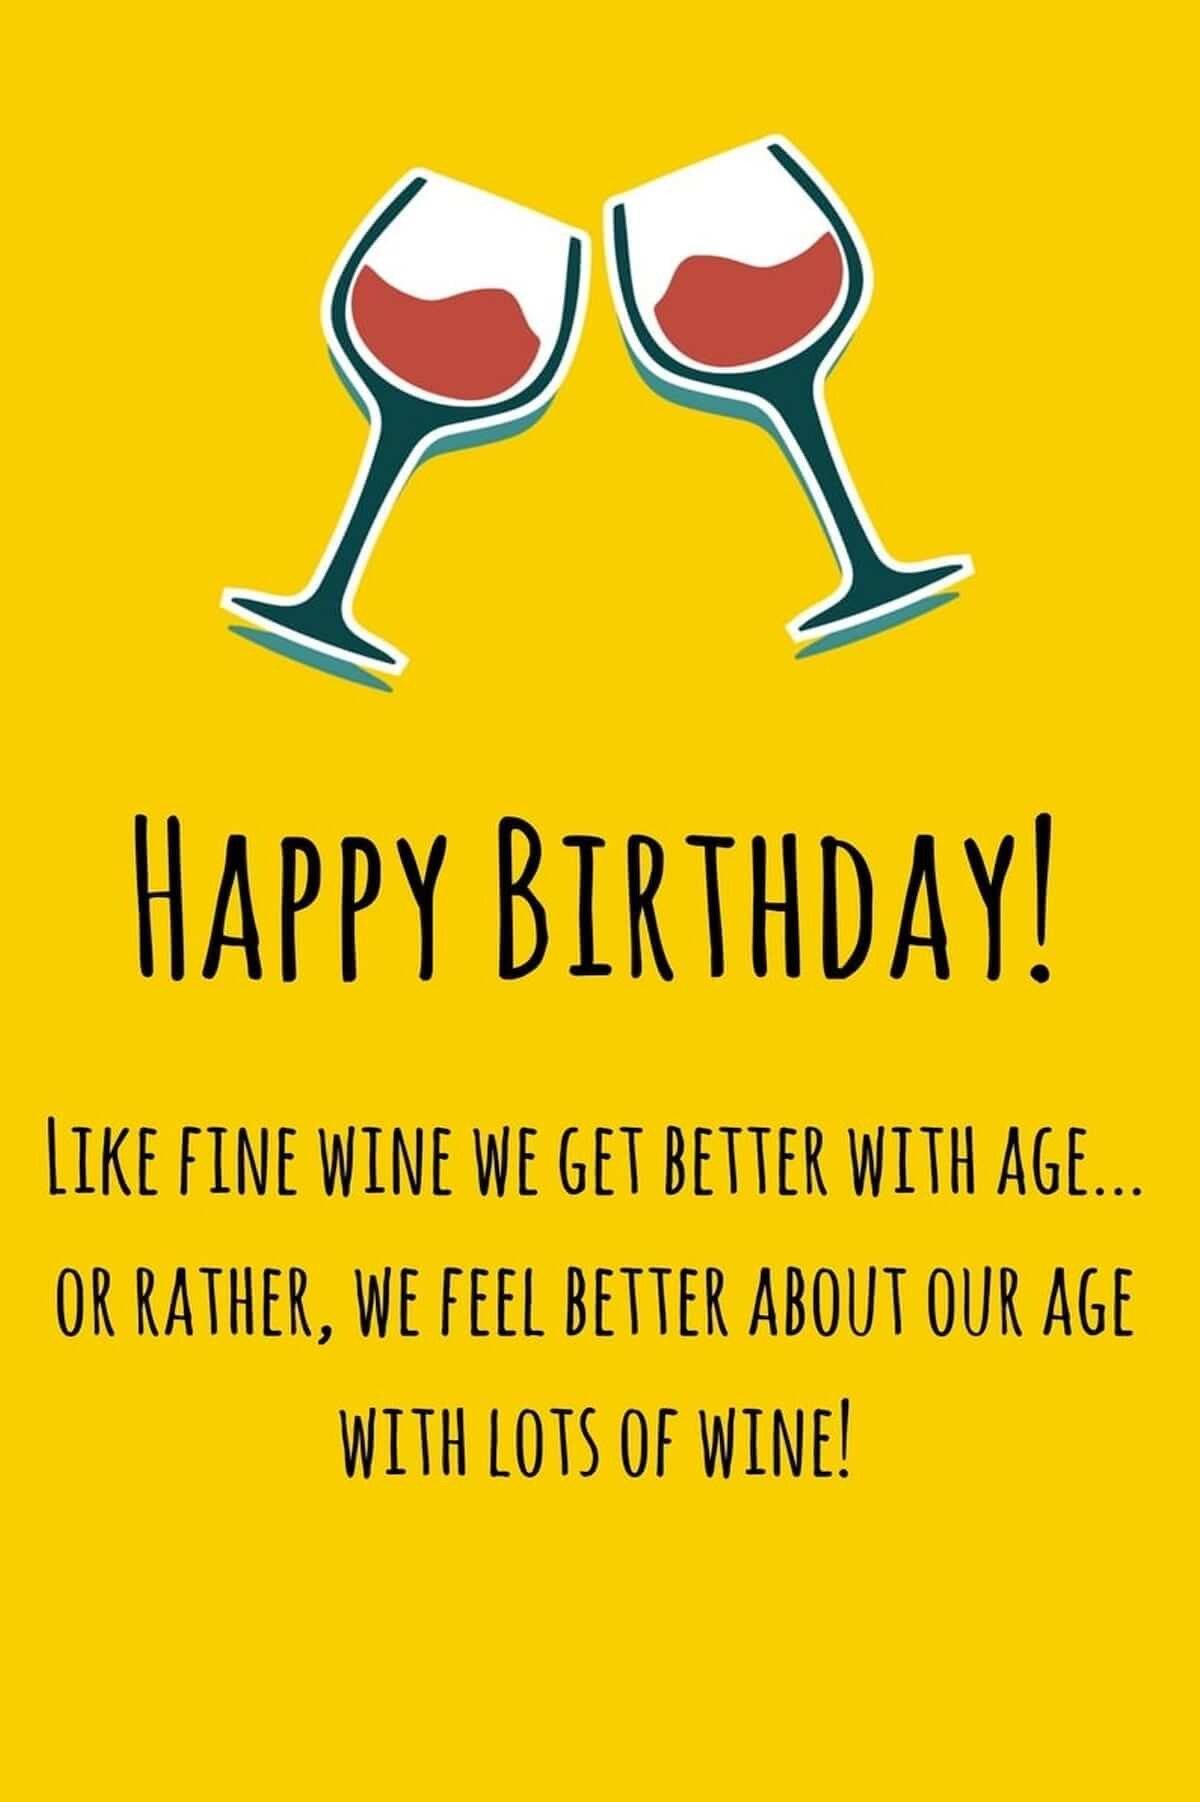 Birthday Wishes For Friend Funny  200 Funny Happy Birthday Wishes Quotes Ever